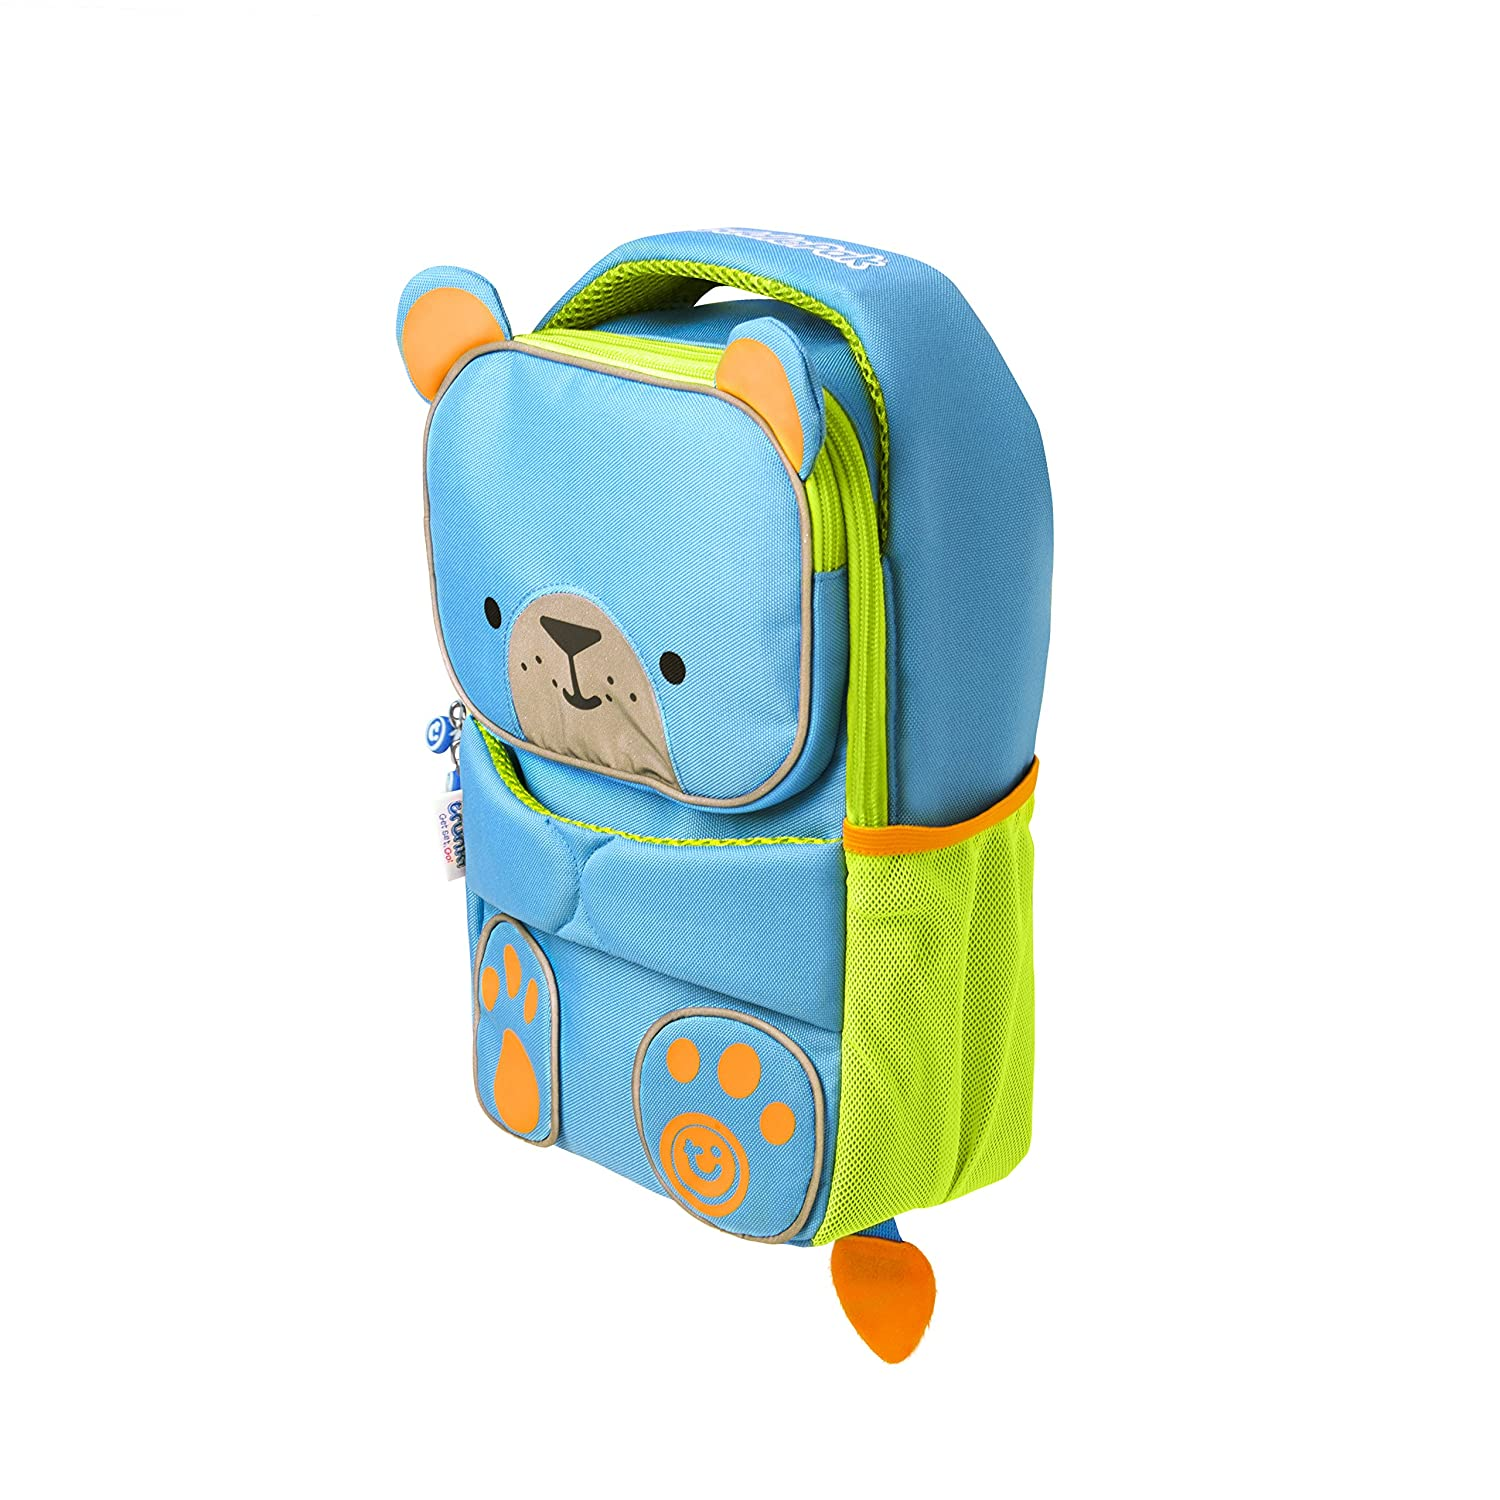 554375870bbb Trunki Toddler s Backpack – Hi-Viz Little Children s Pre School Rucksack - ToddlePak  Bert (Blue)  Amazon.in  Bags